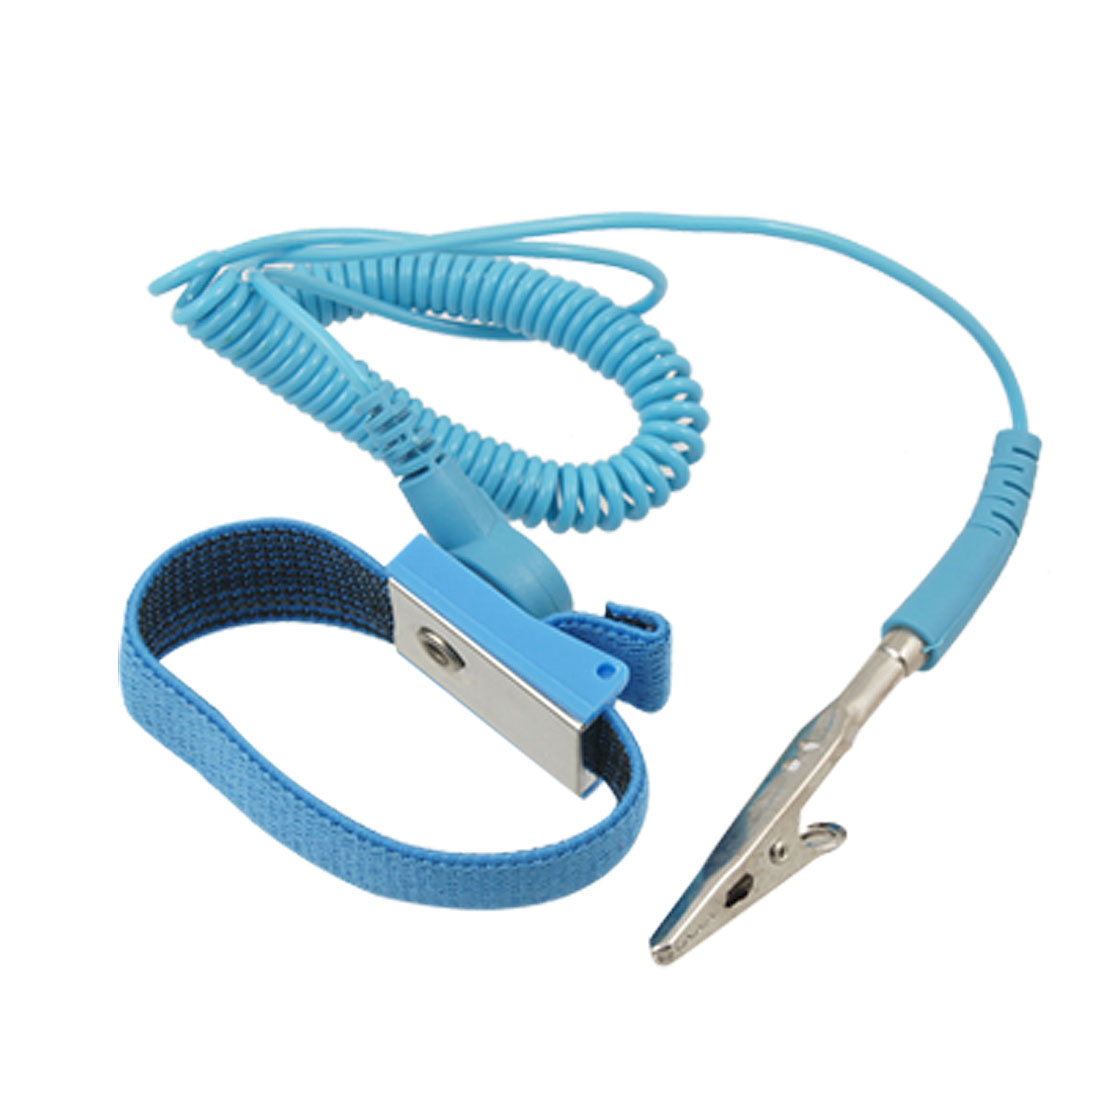 New-Anti-Static-Wristband-Wrist-Strap-Band-ESD-Discharge-Grounding-Blue